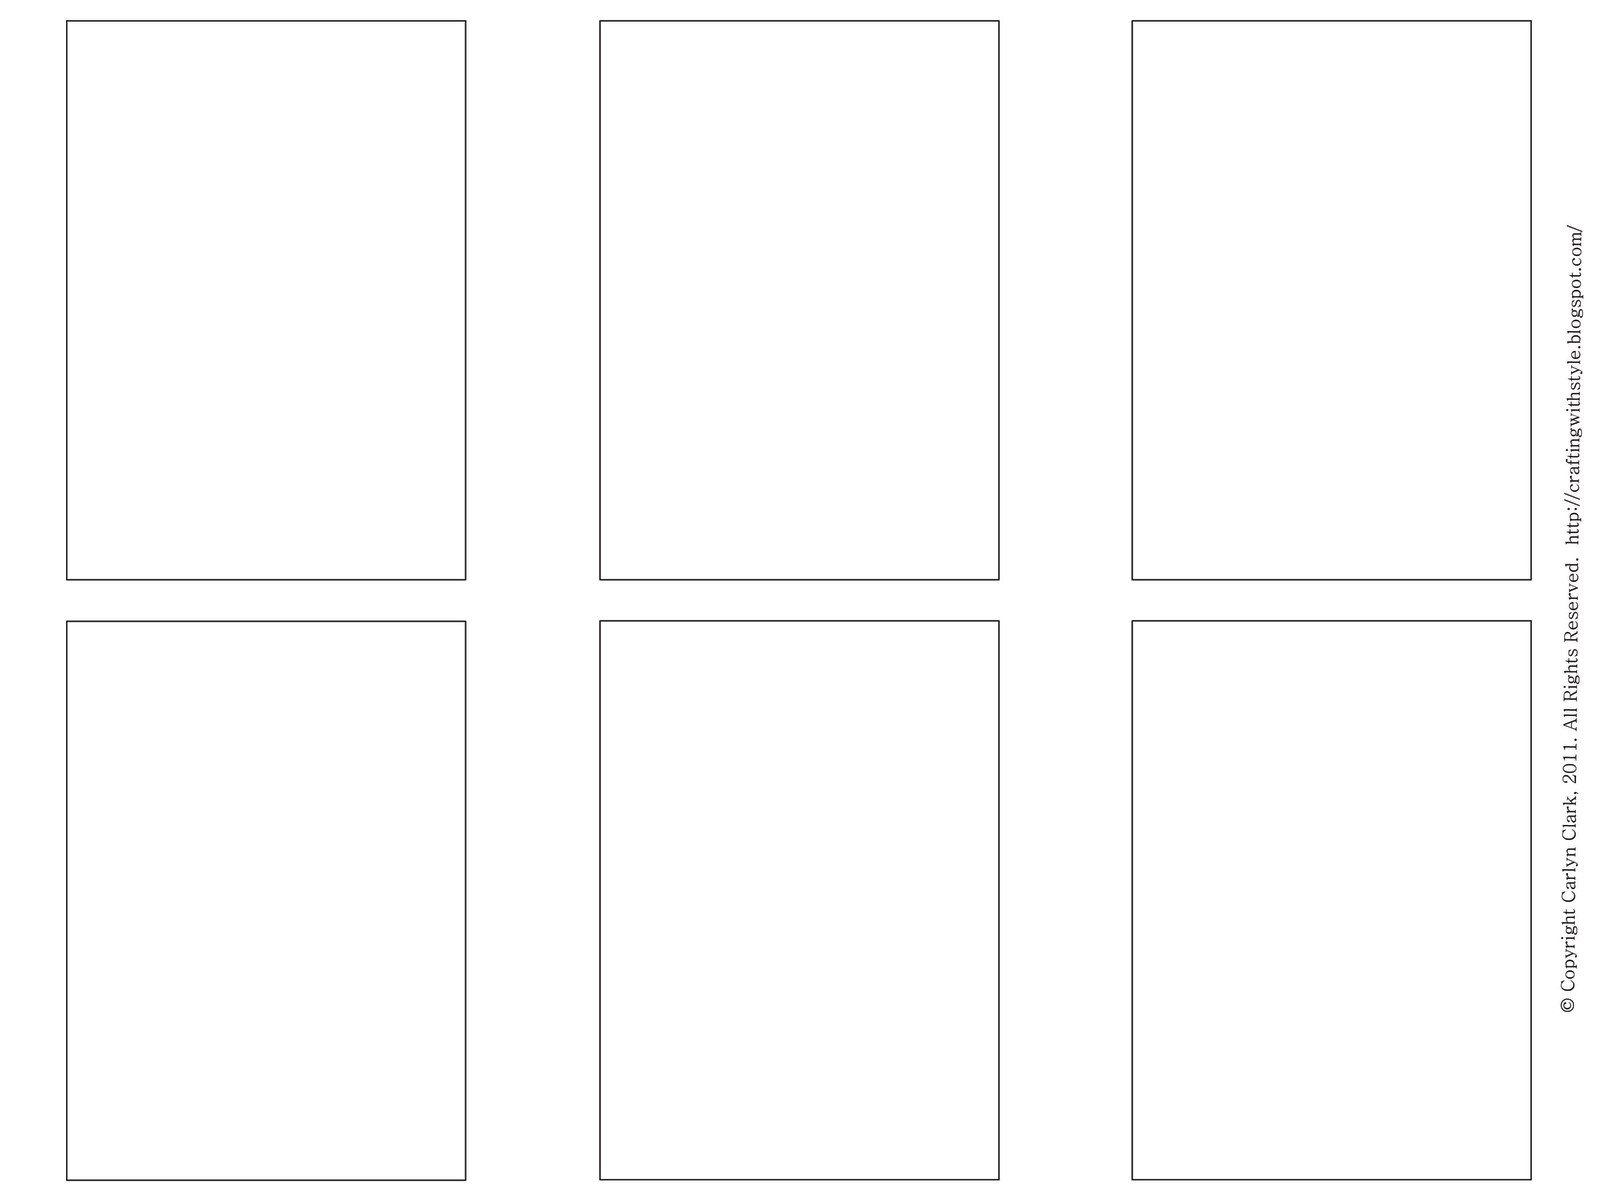 Blank Trading Card Template Crafting with Style Free atc Templates and Artwork for atc S